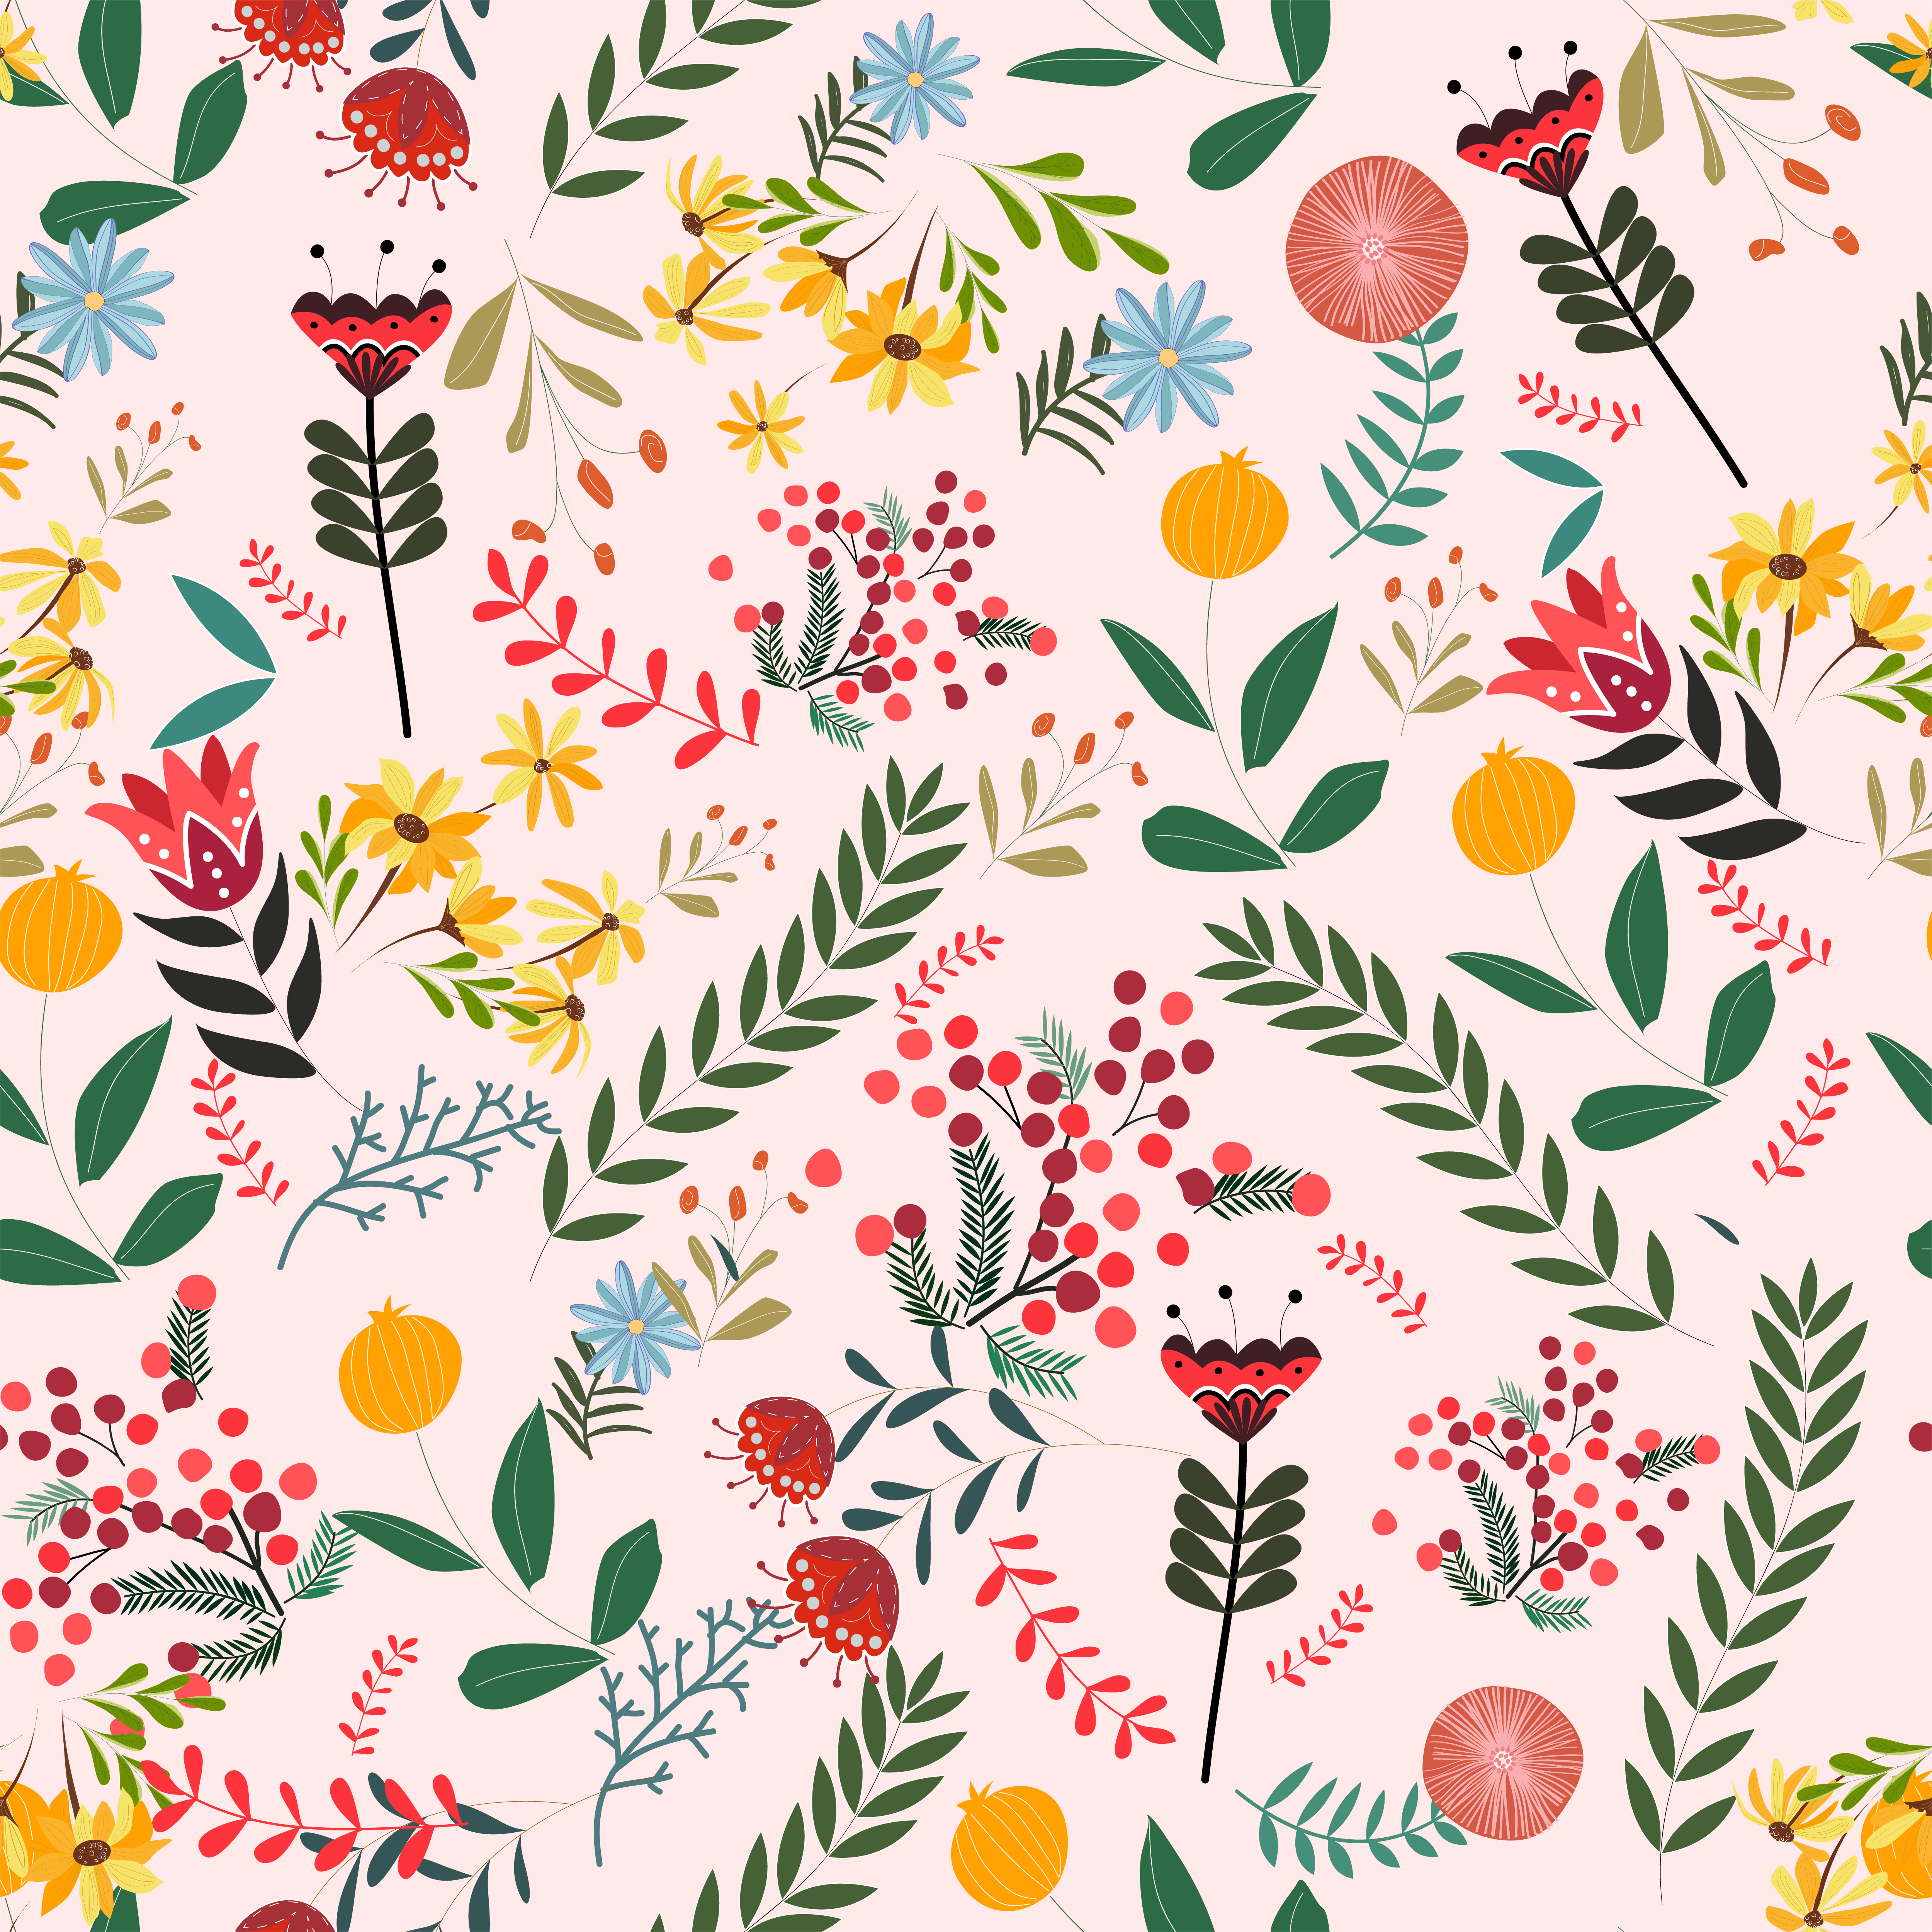 Vintage Floral Background Pattern Download Free Vectors Clipart